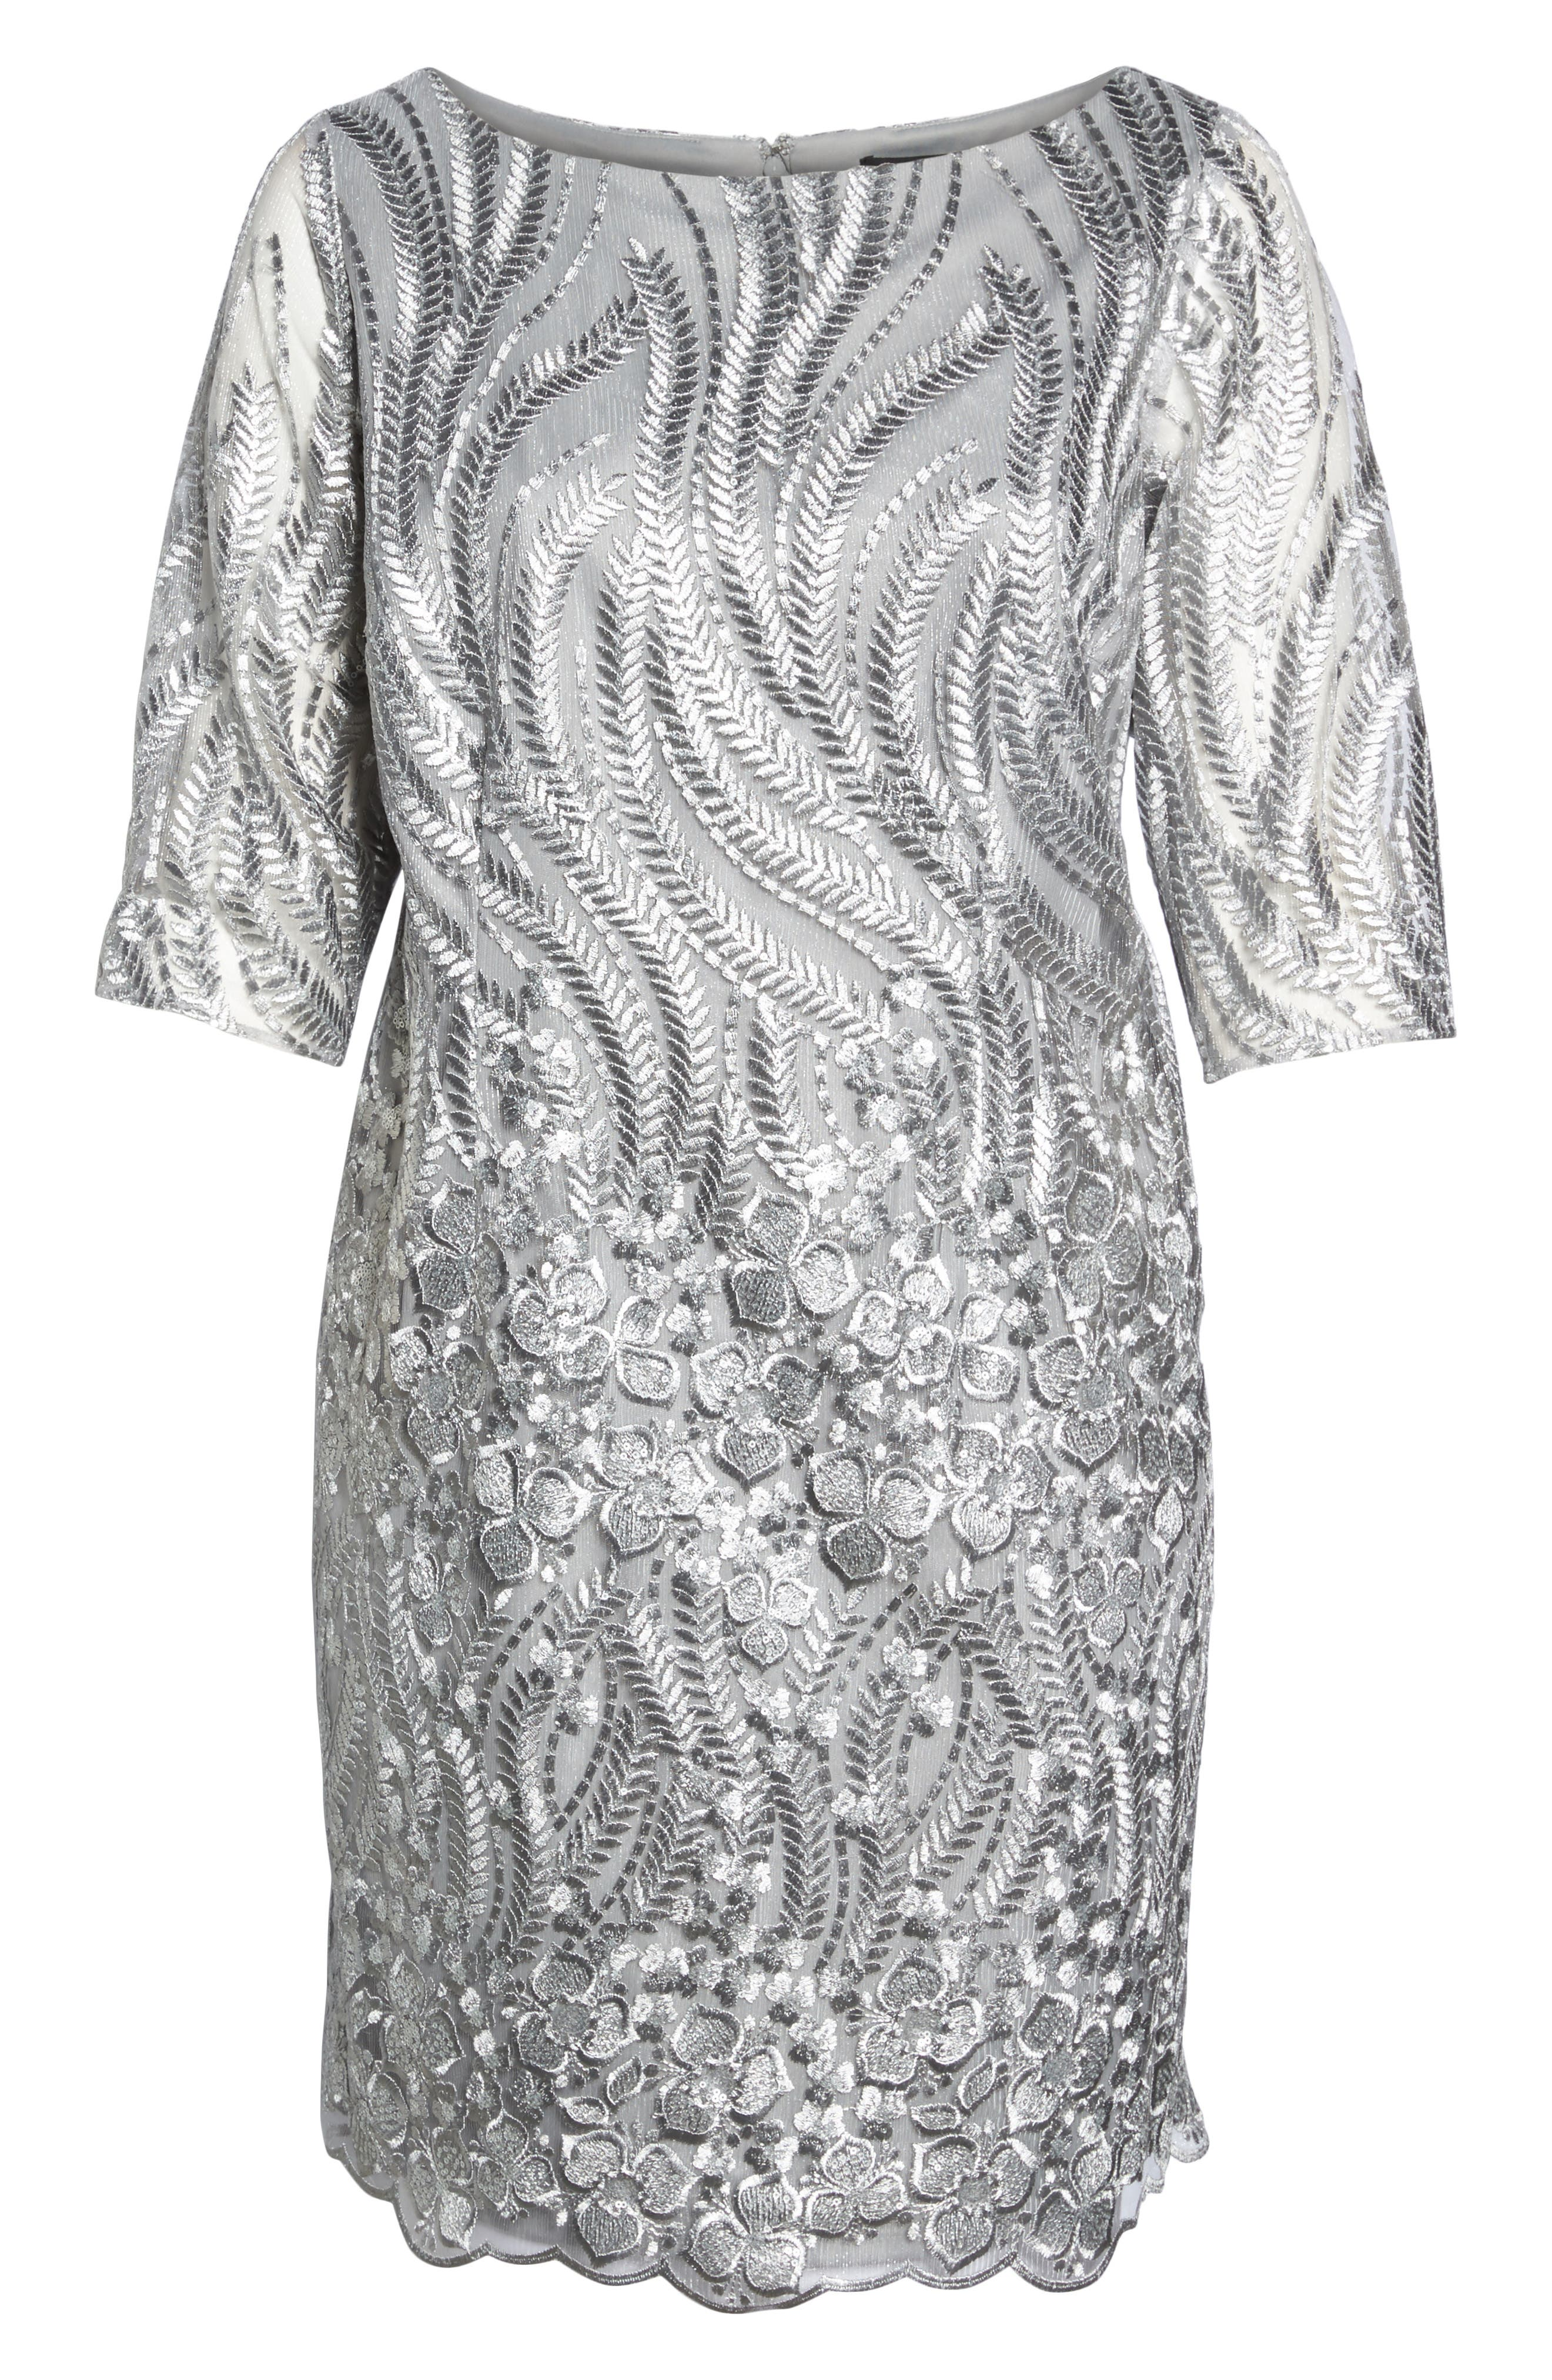 Sequin Embroidered Lace Sheath Dress,                             Alternate thumbnail 6, color,                             020